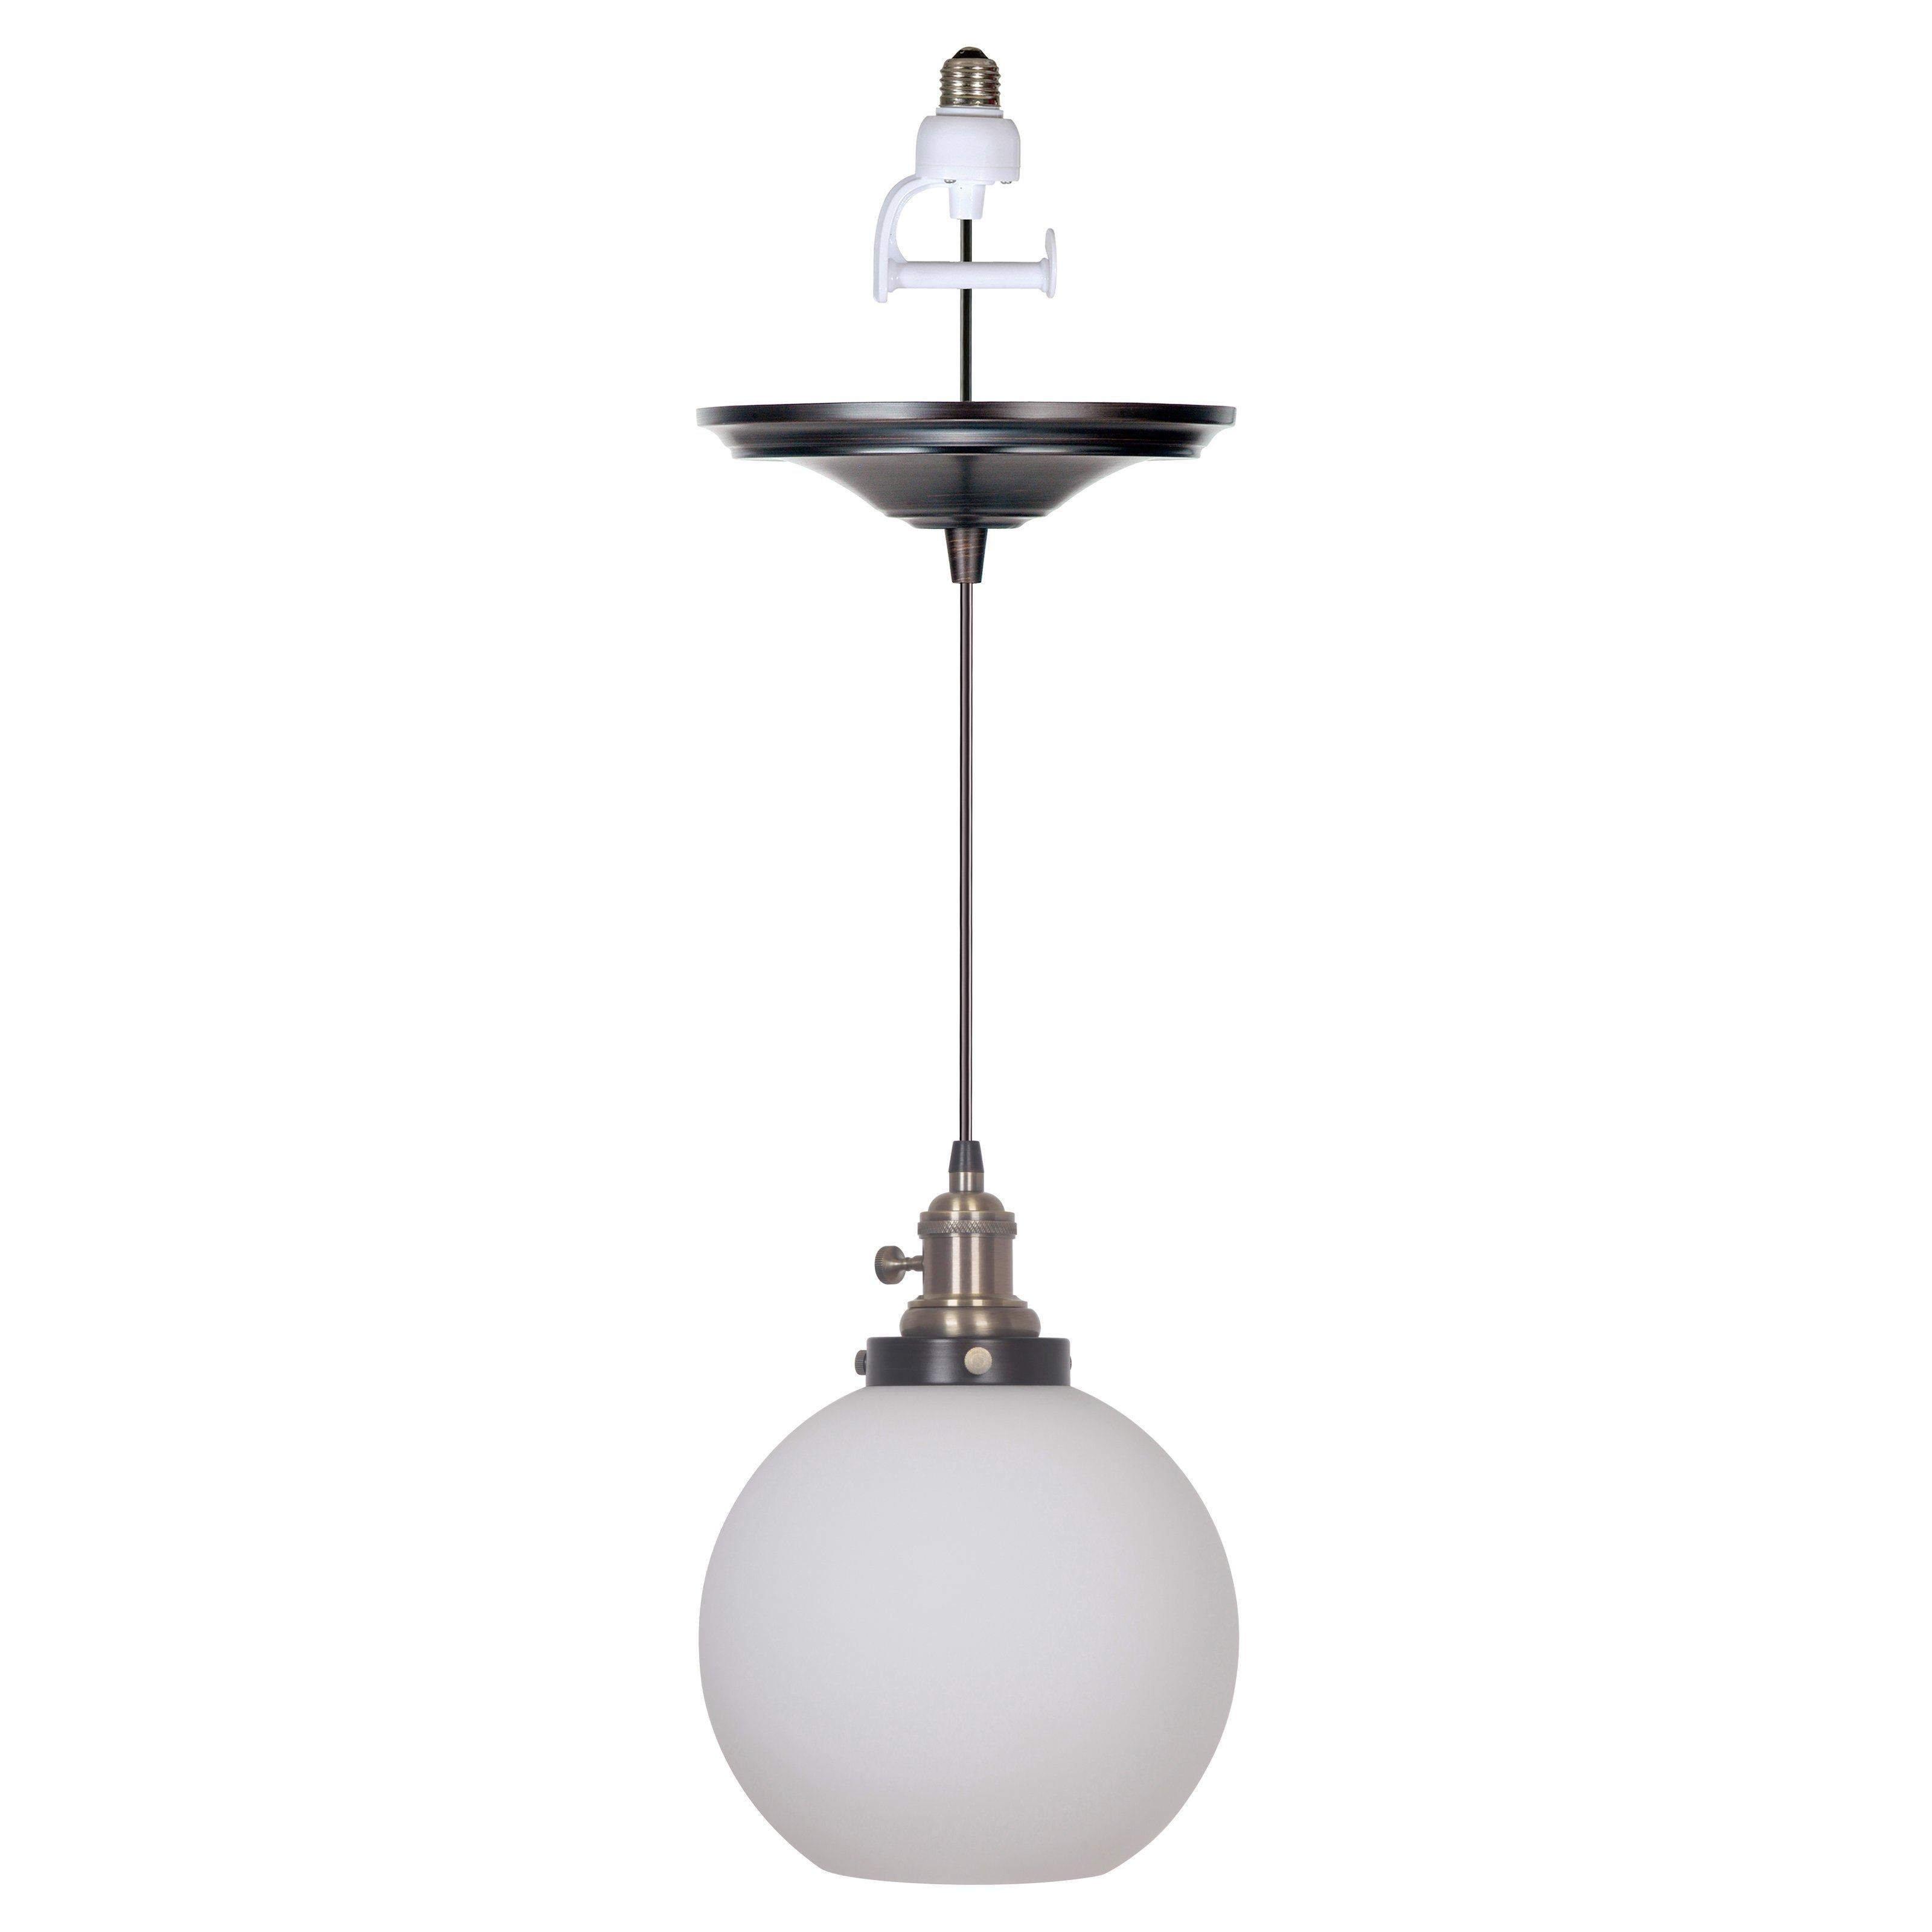 Bautista 1 Light Single Globe Pendants Pertaining To Famous Worth Home Products Instant Screw In Pendant Light With (View 11 of 25)